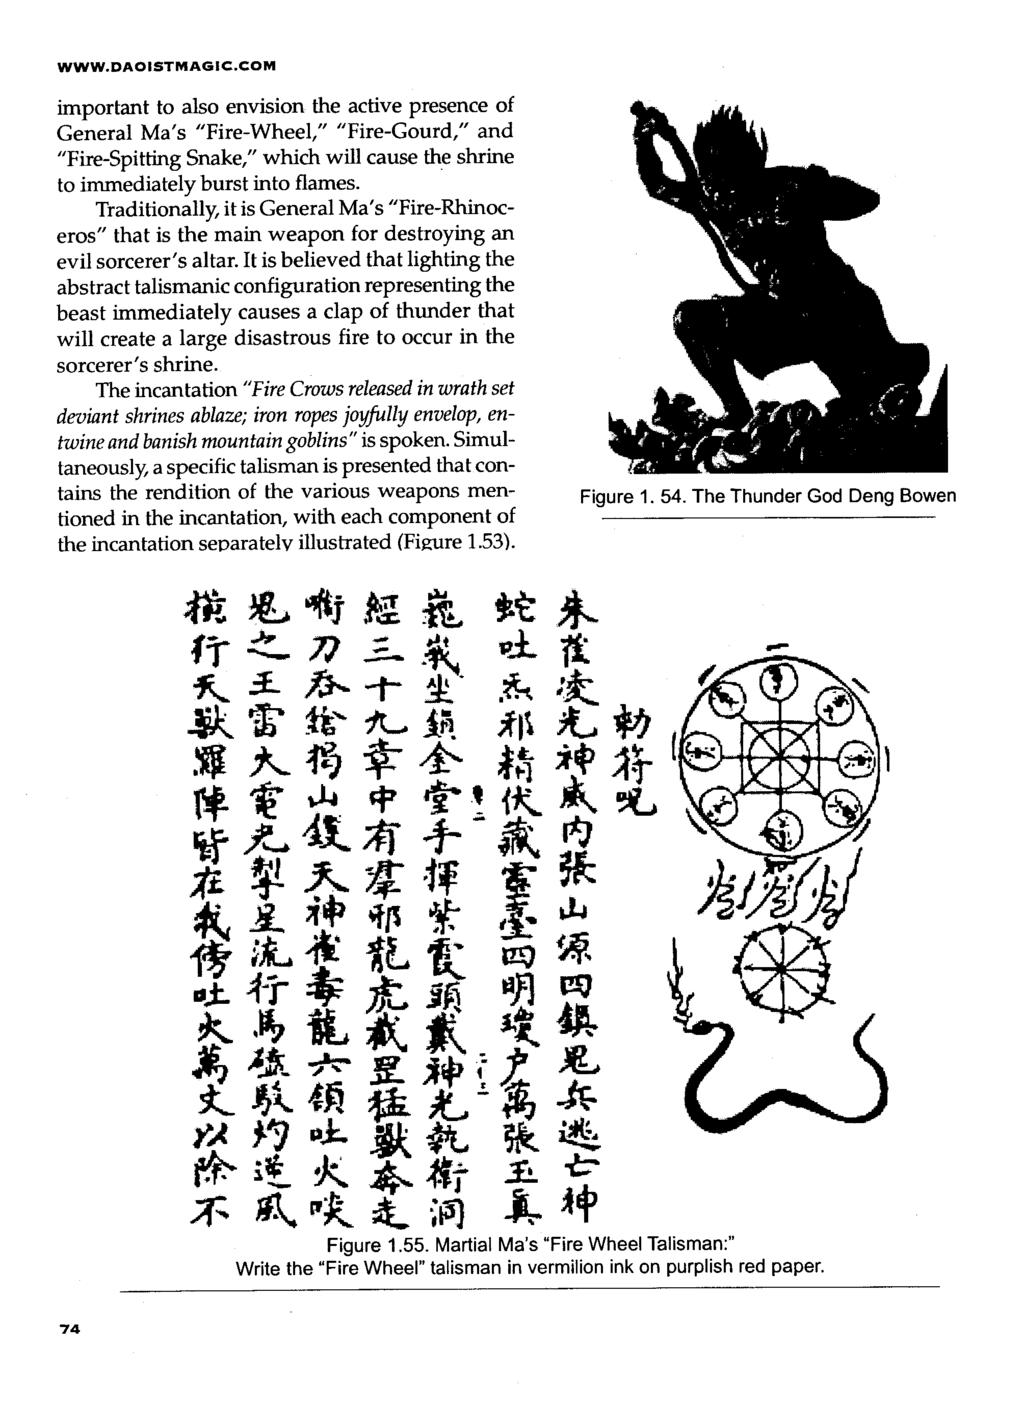 "WWW.DAOISTMAGIC.COM important to also envision the active presence of General Ma's ""Fire-Wheel,"" ""Fire-Gourd,"" and ""Fire-Spitting Snake,"" which will cause the shrine to immediately burst into flames."